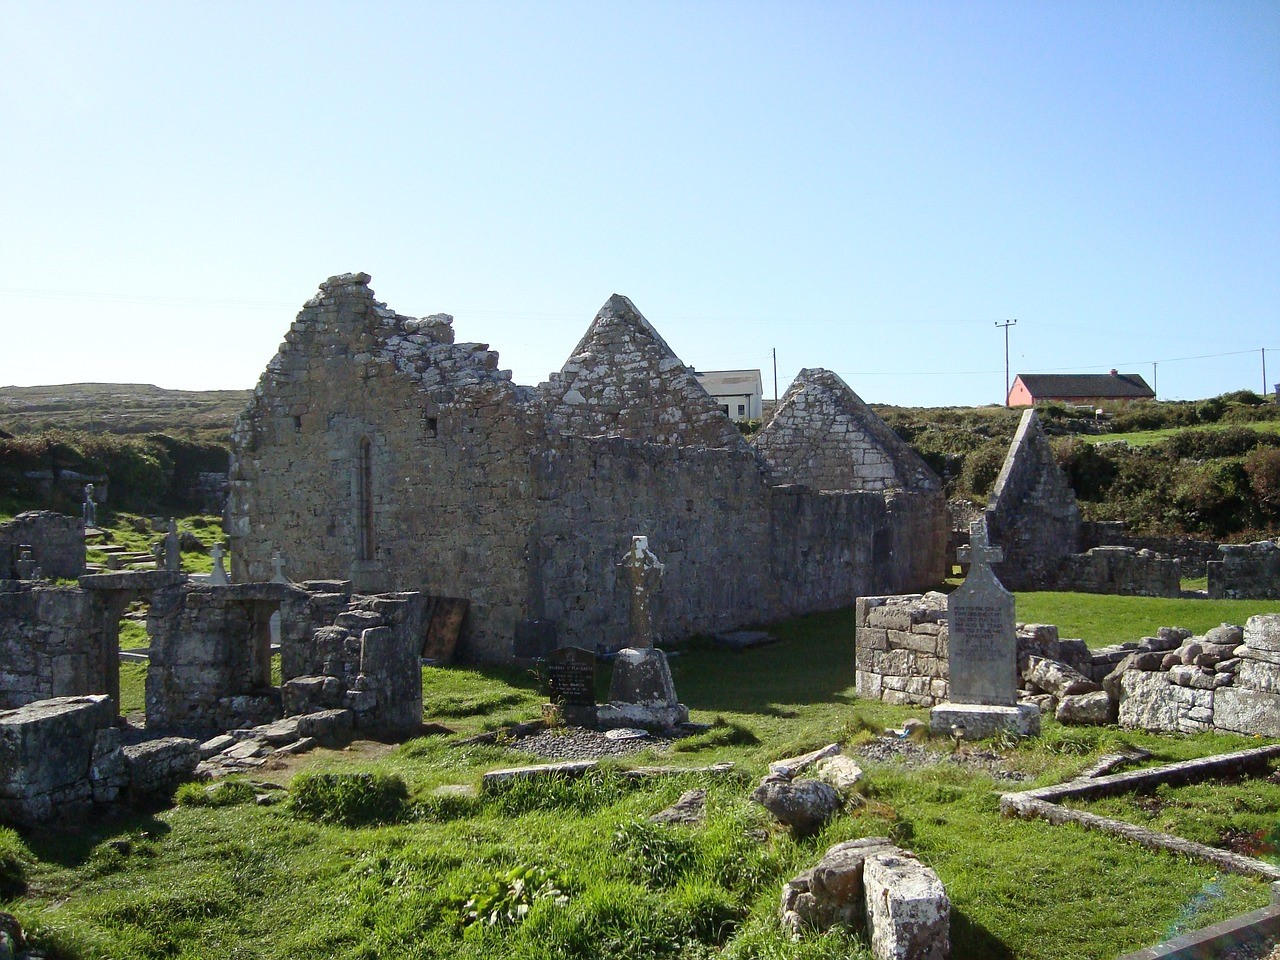 The traditions and culture of the Aran Islands